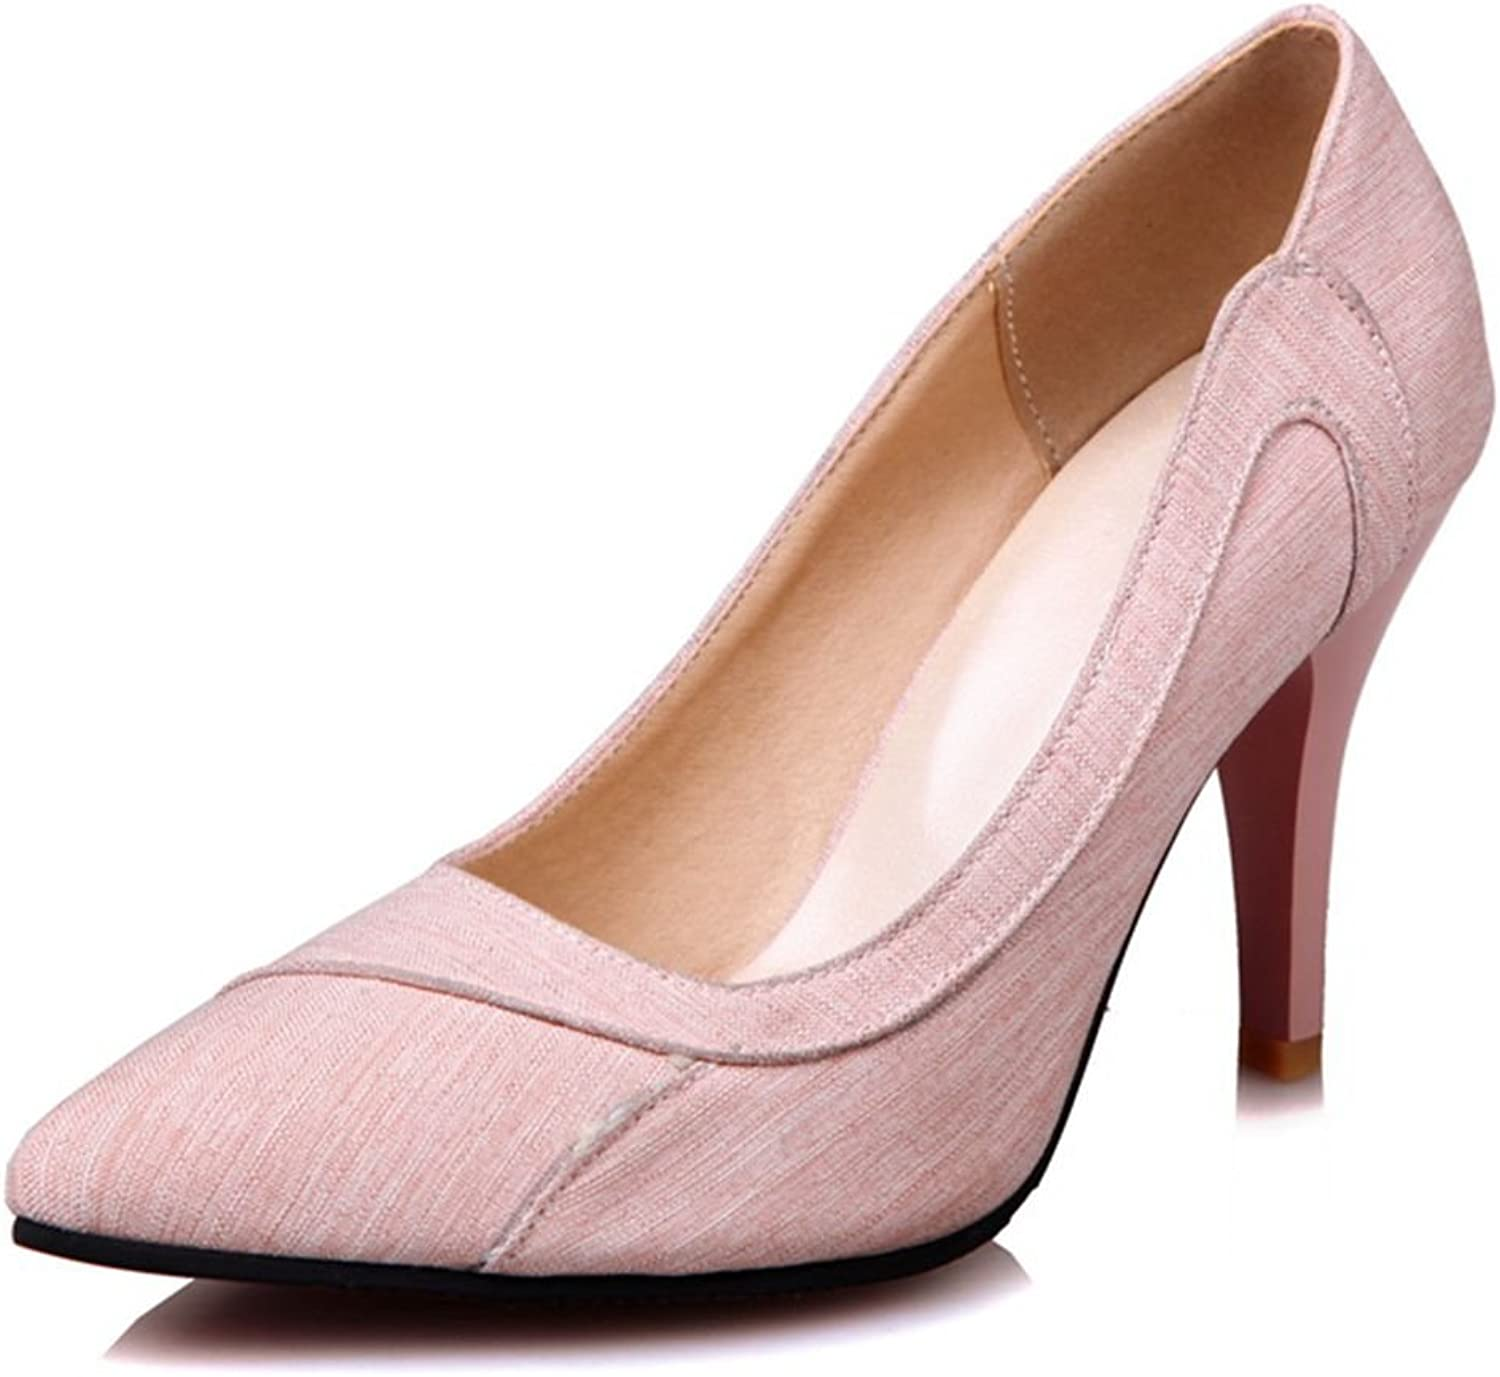 DecoStain Women's Pointed Toe High Heels Pumps Work Office shoes